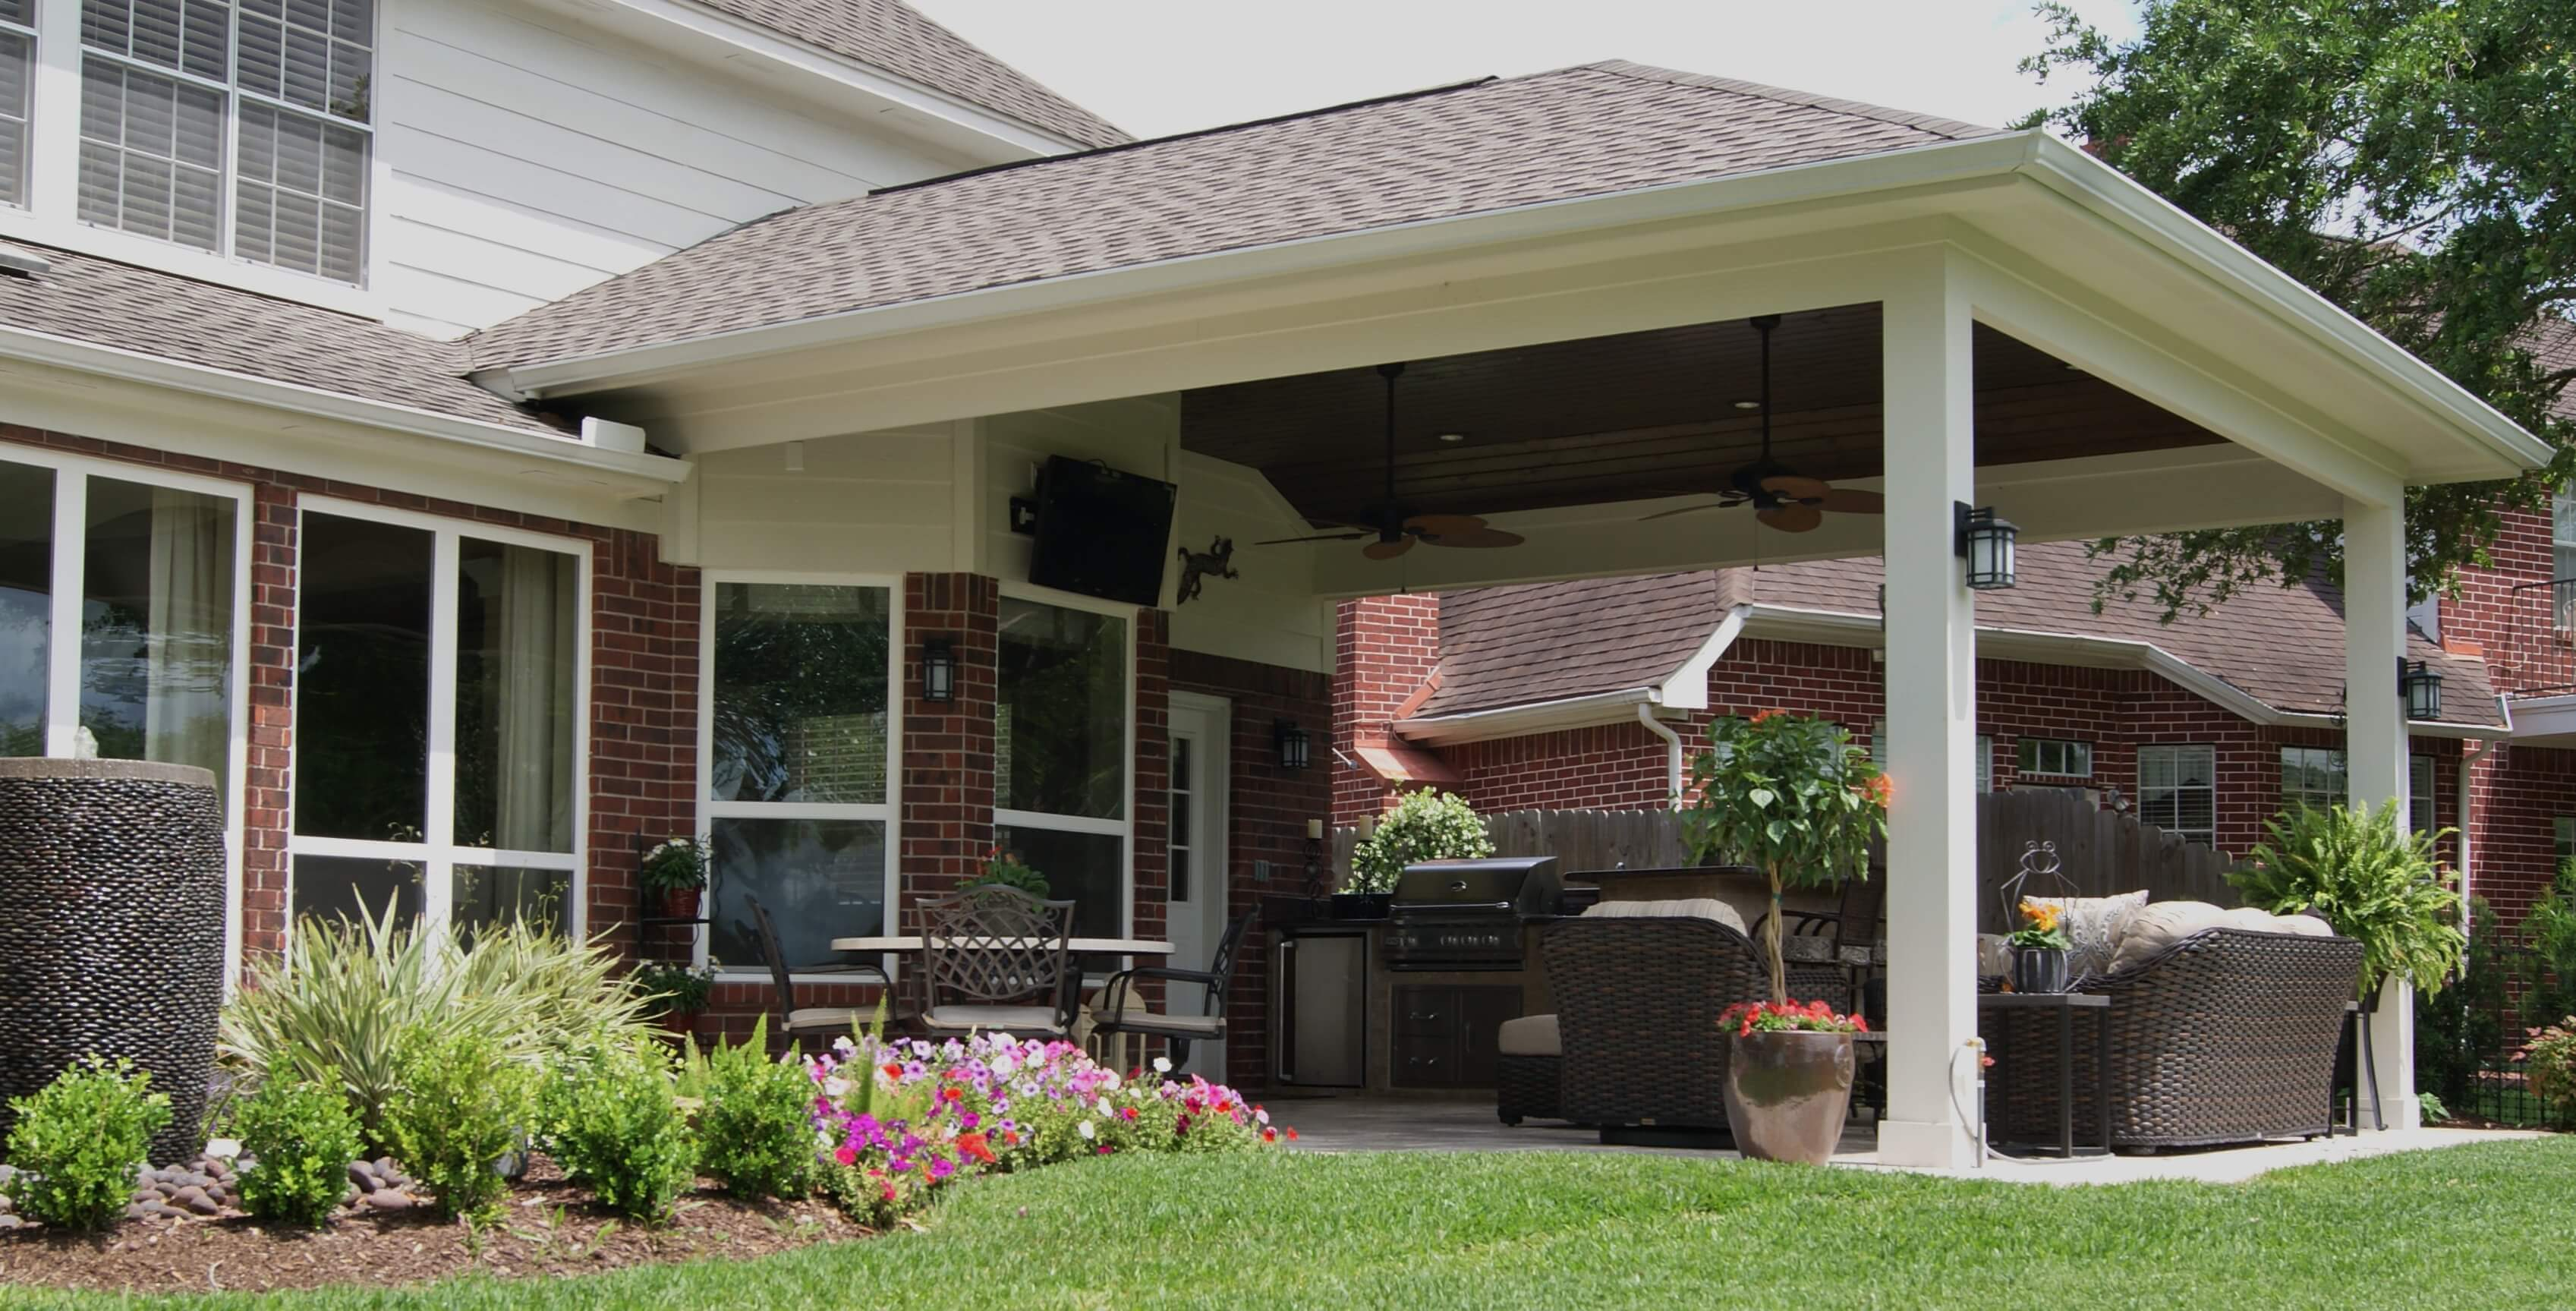 Merveilleux Stunning Patio Covers Houston Houston Patio Cover Dallas Patio Inside  Sizing 3394 X 1727